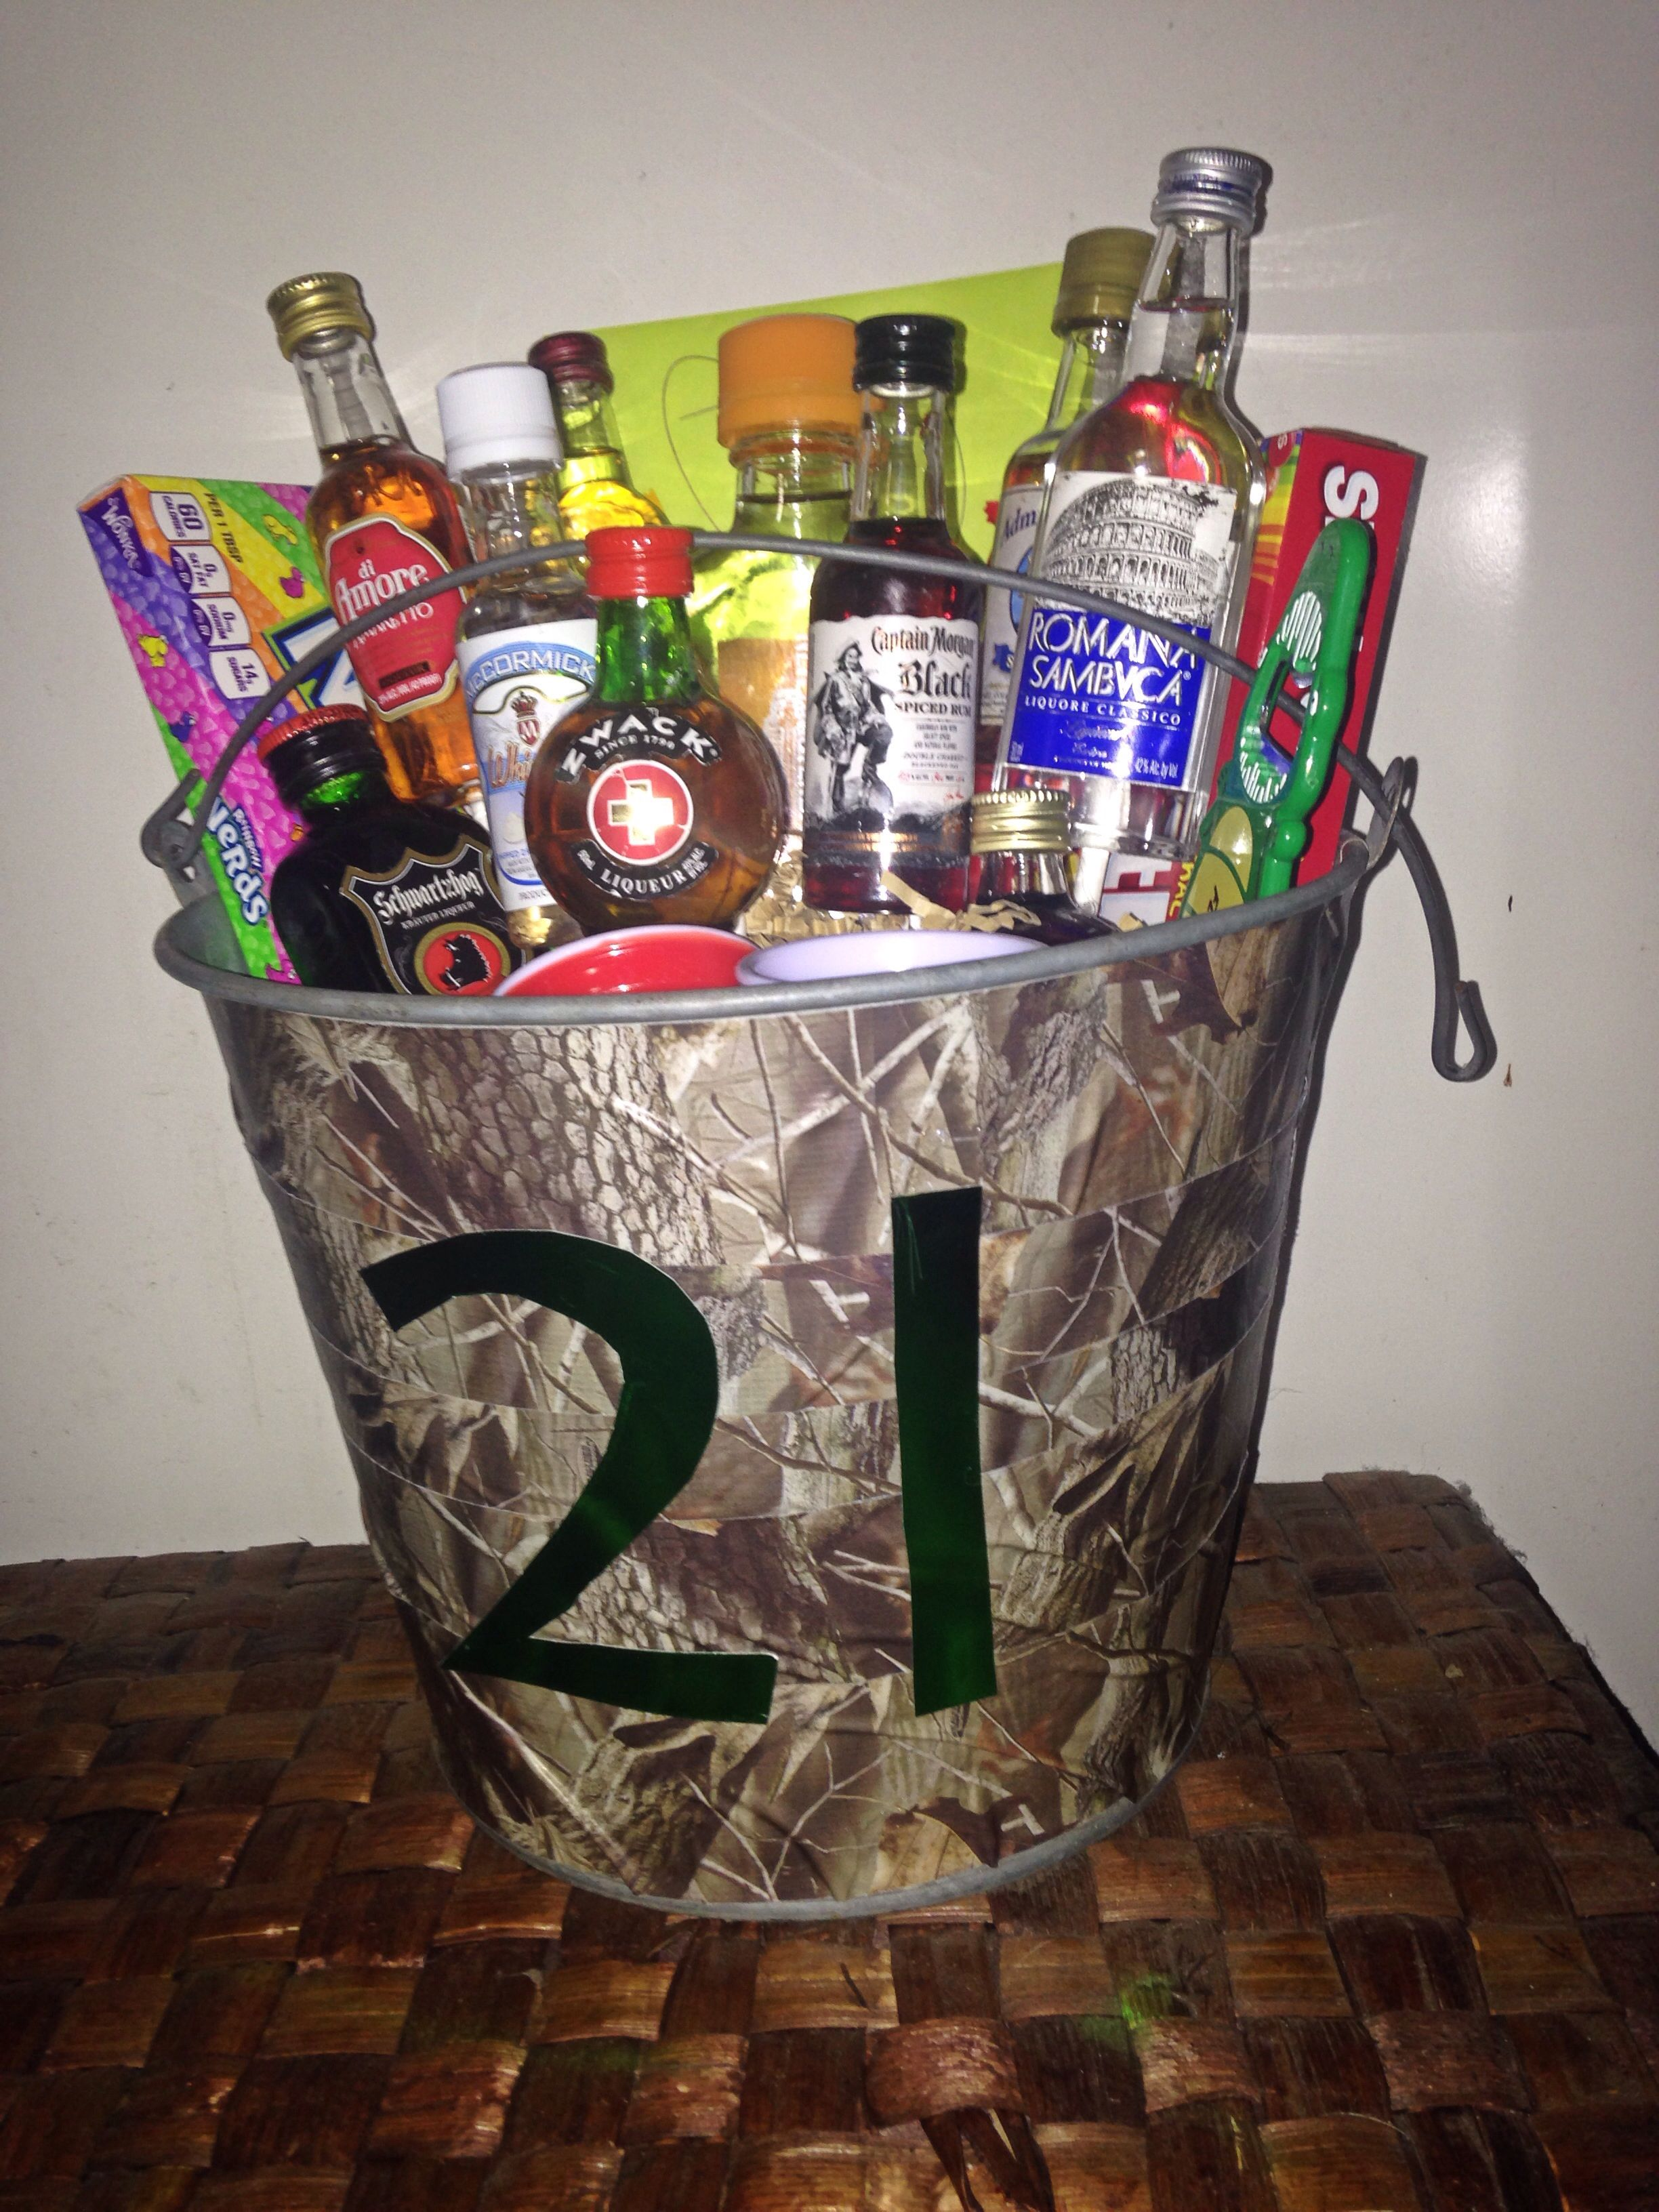 21st Birthday Gift For One Of My Guy Friends 10 Different Drinks Mini Red Solo Cup Shot Glasses Candy And Course The Card